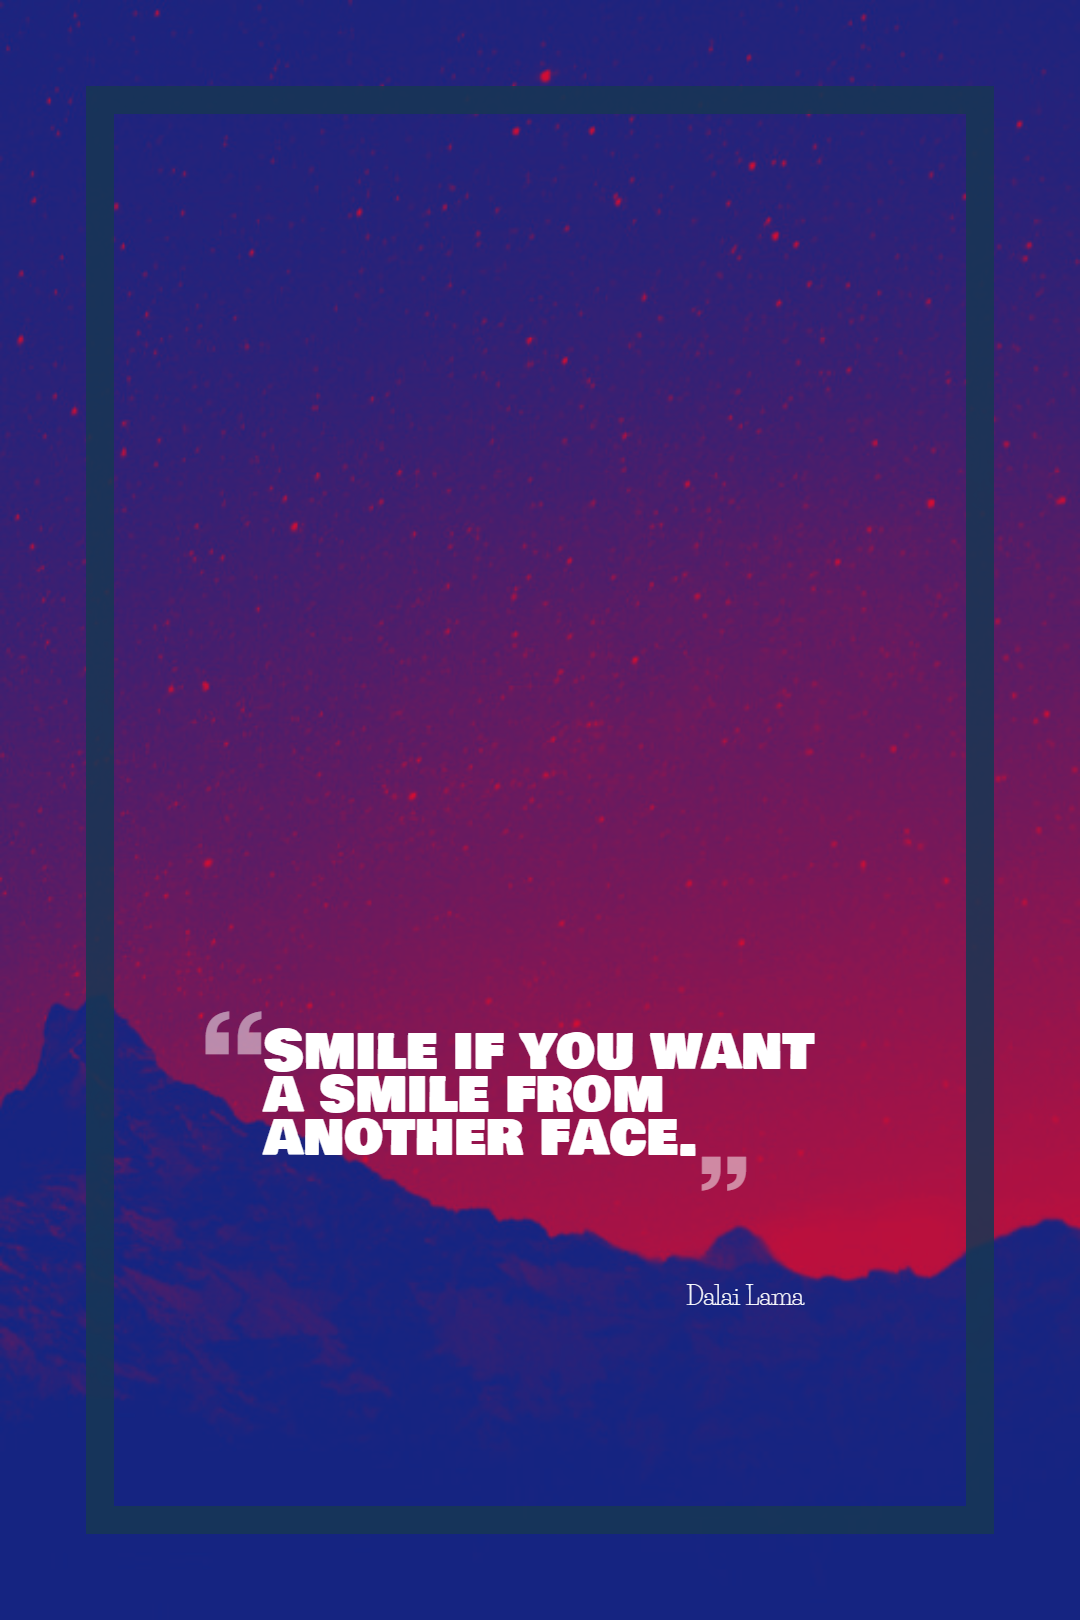 Quotes About Smiling That Will Tell You About The Power Of Smile In 2020 Smile Quotes Inspirational Quotes Quotes